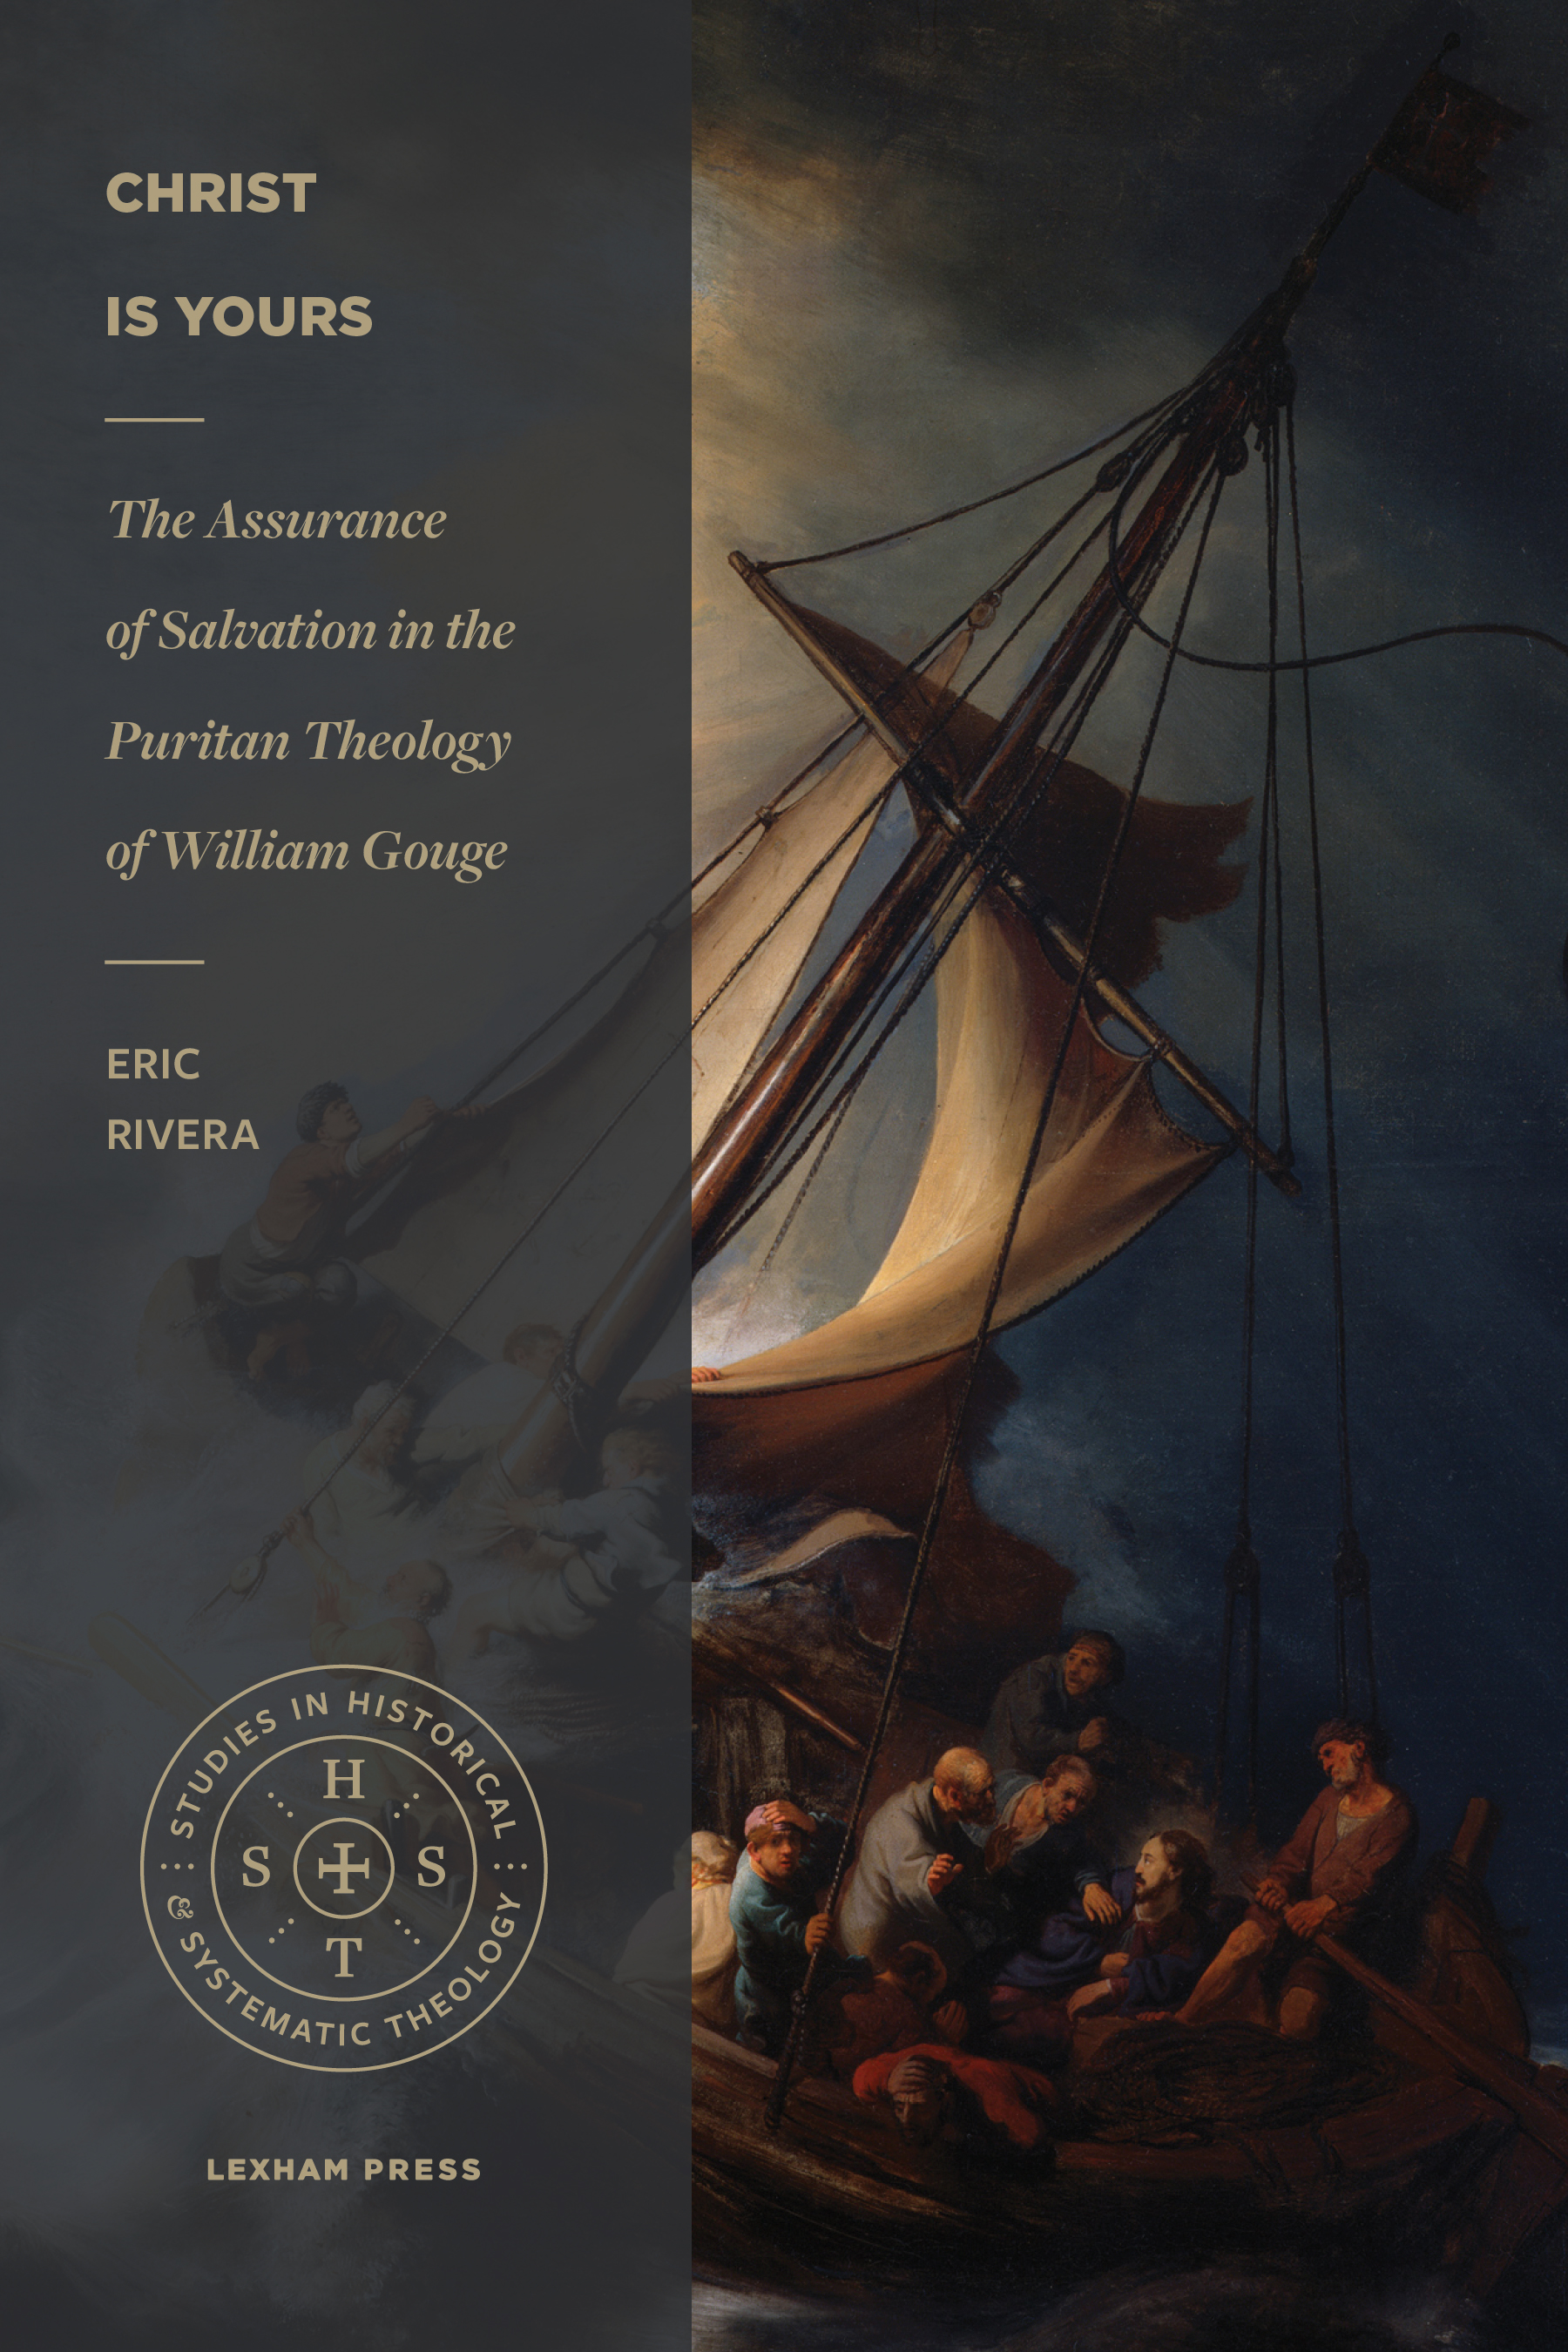 Christ Is Yours: The Assurance of Salvation in the Puritan Theology of William Gouge